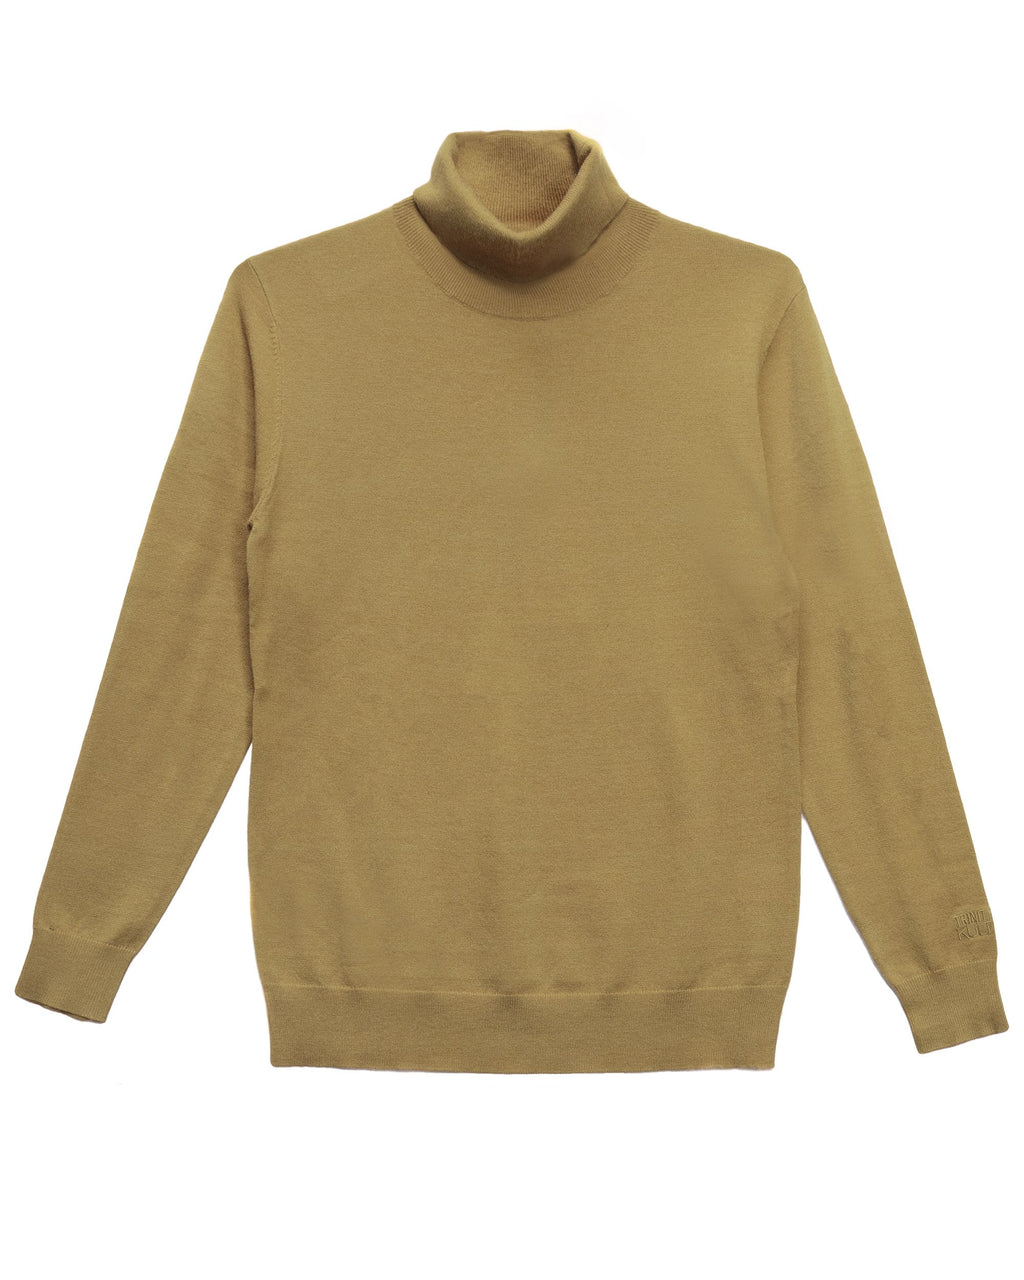 Trinity Kays Kulture Logo Turtleneck Sweater - Tan